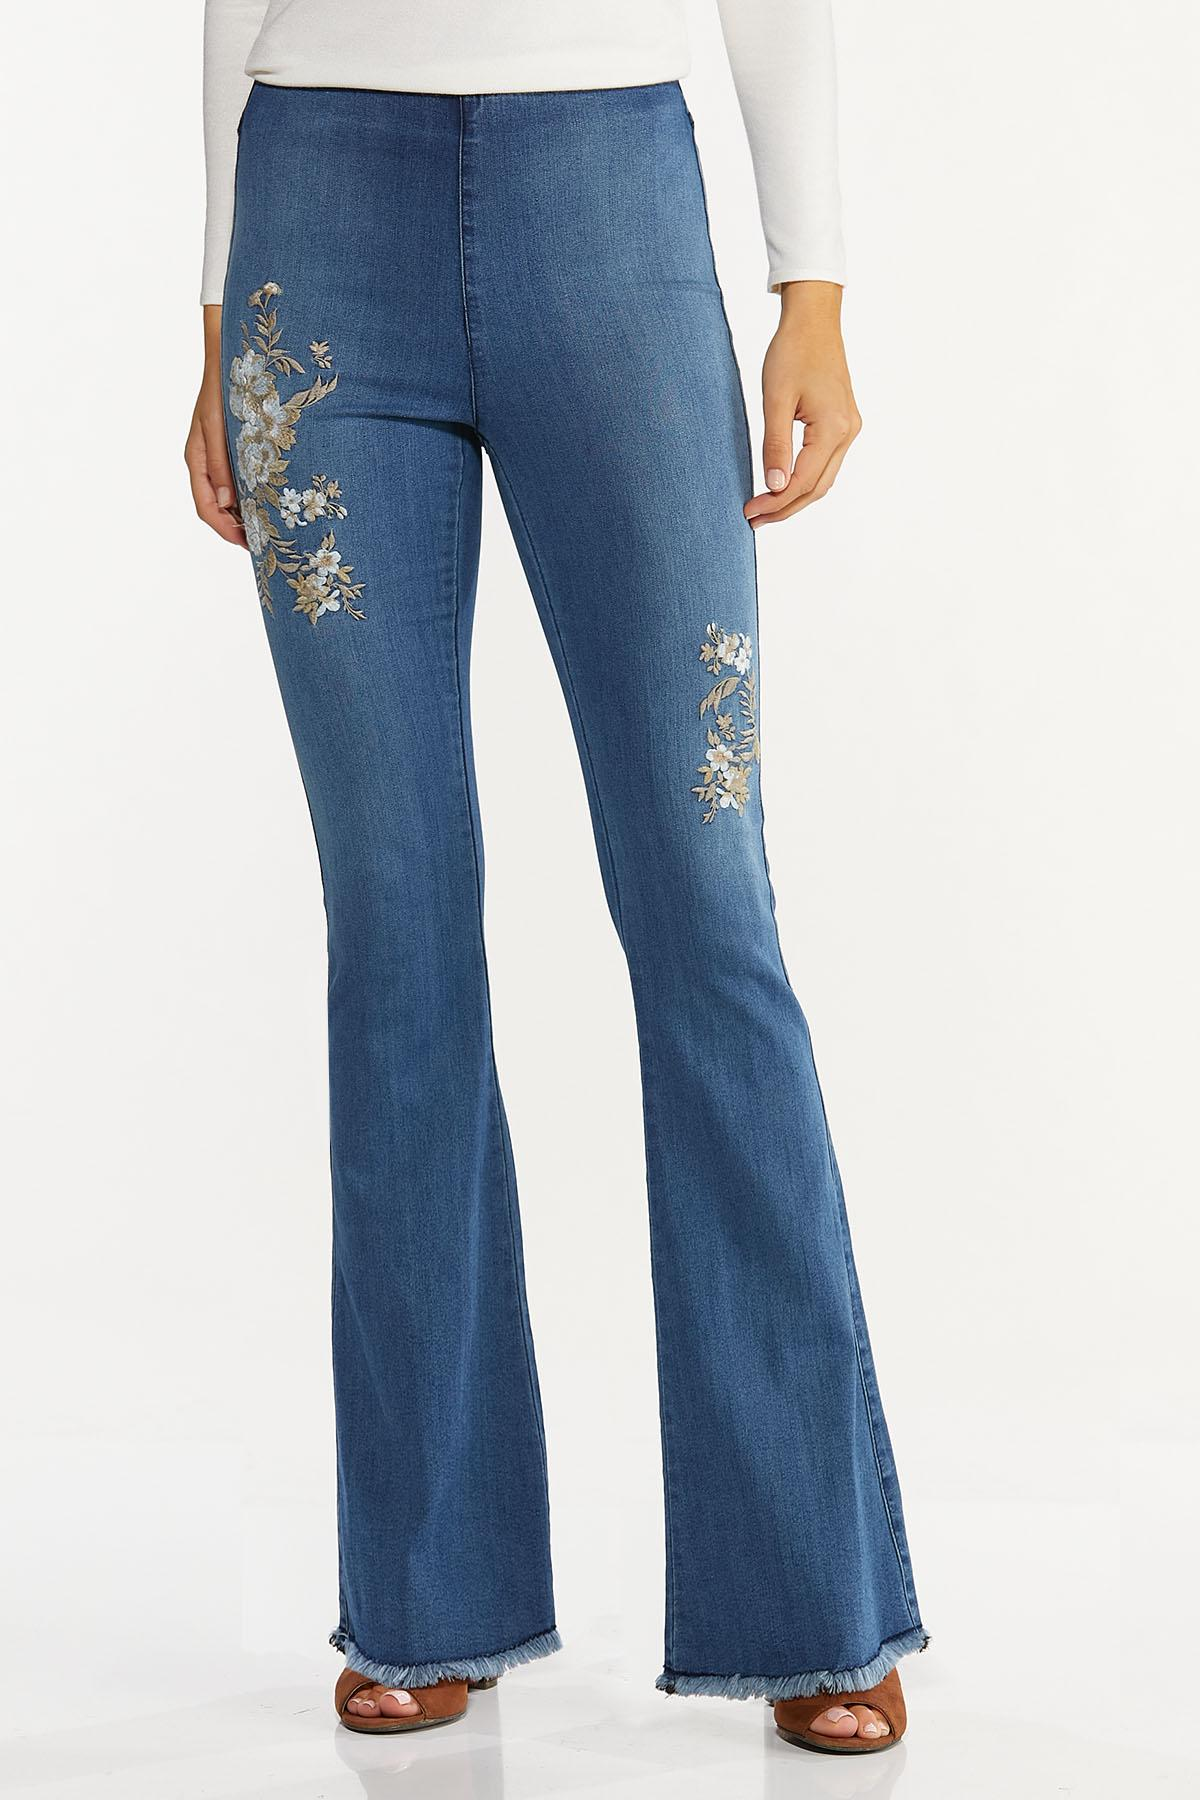 Floral Embroidered Flare Jeans